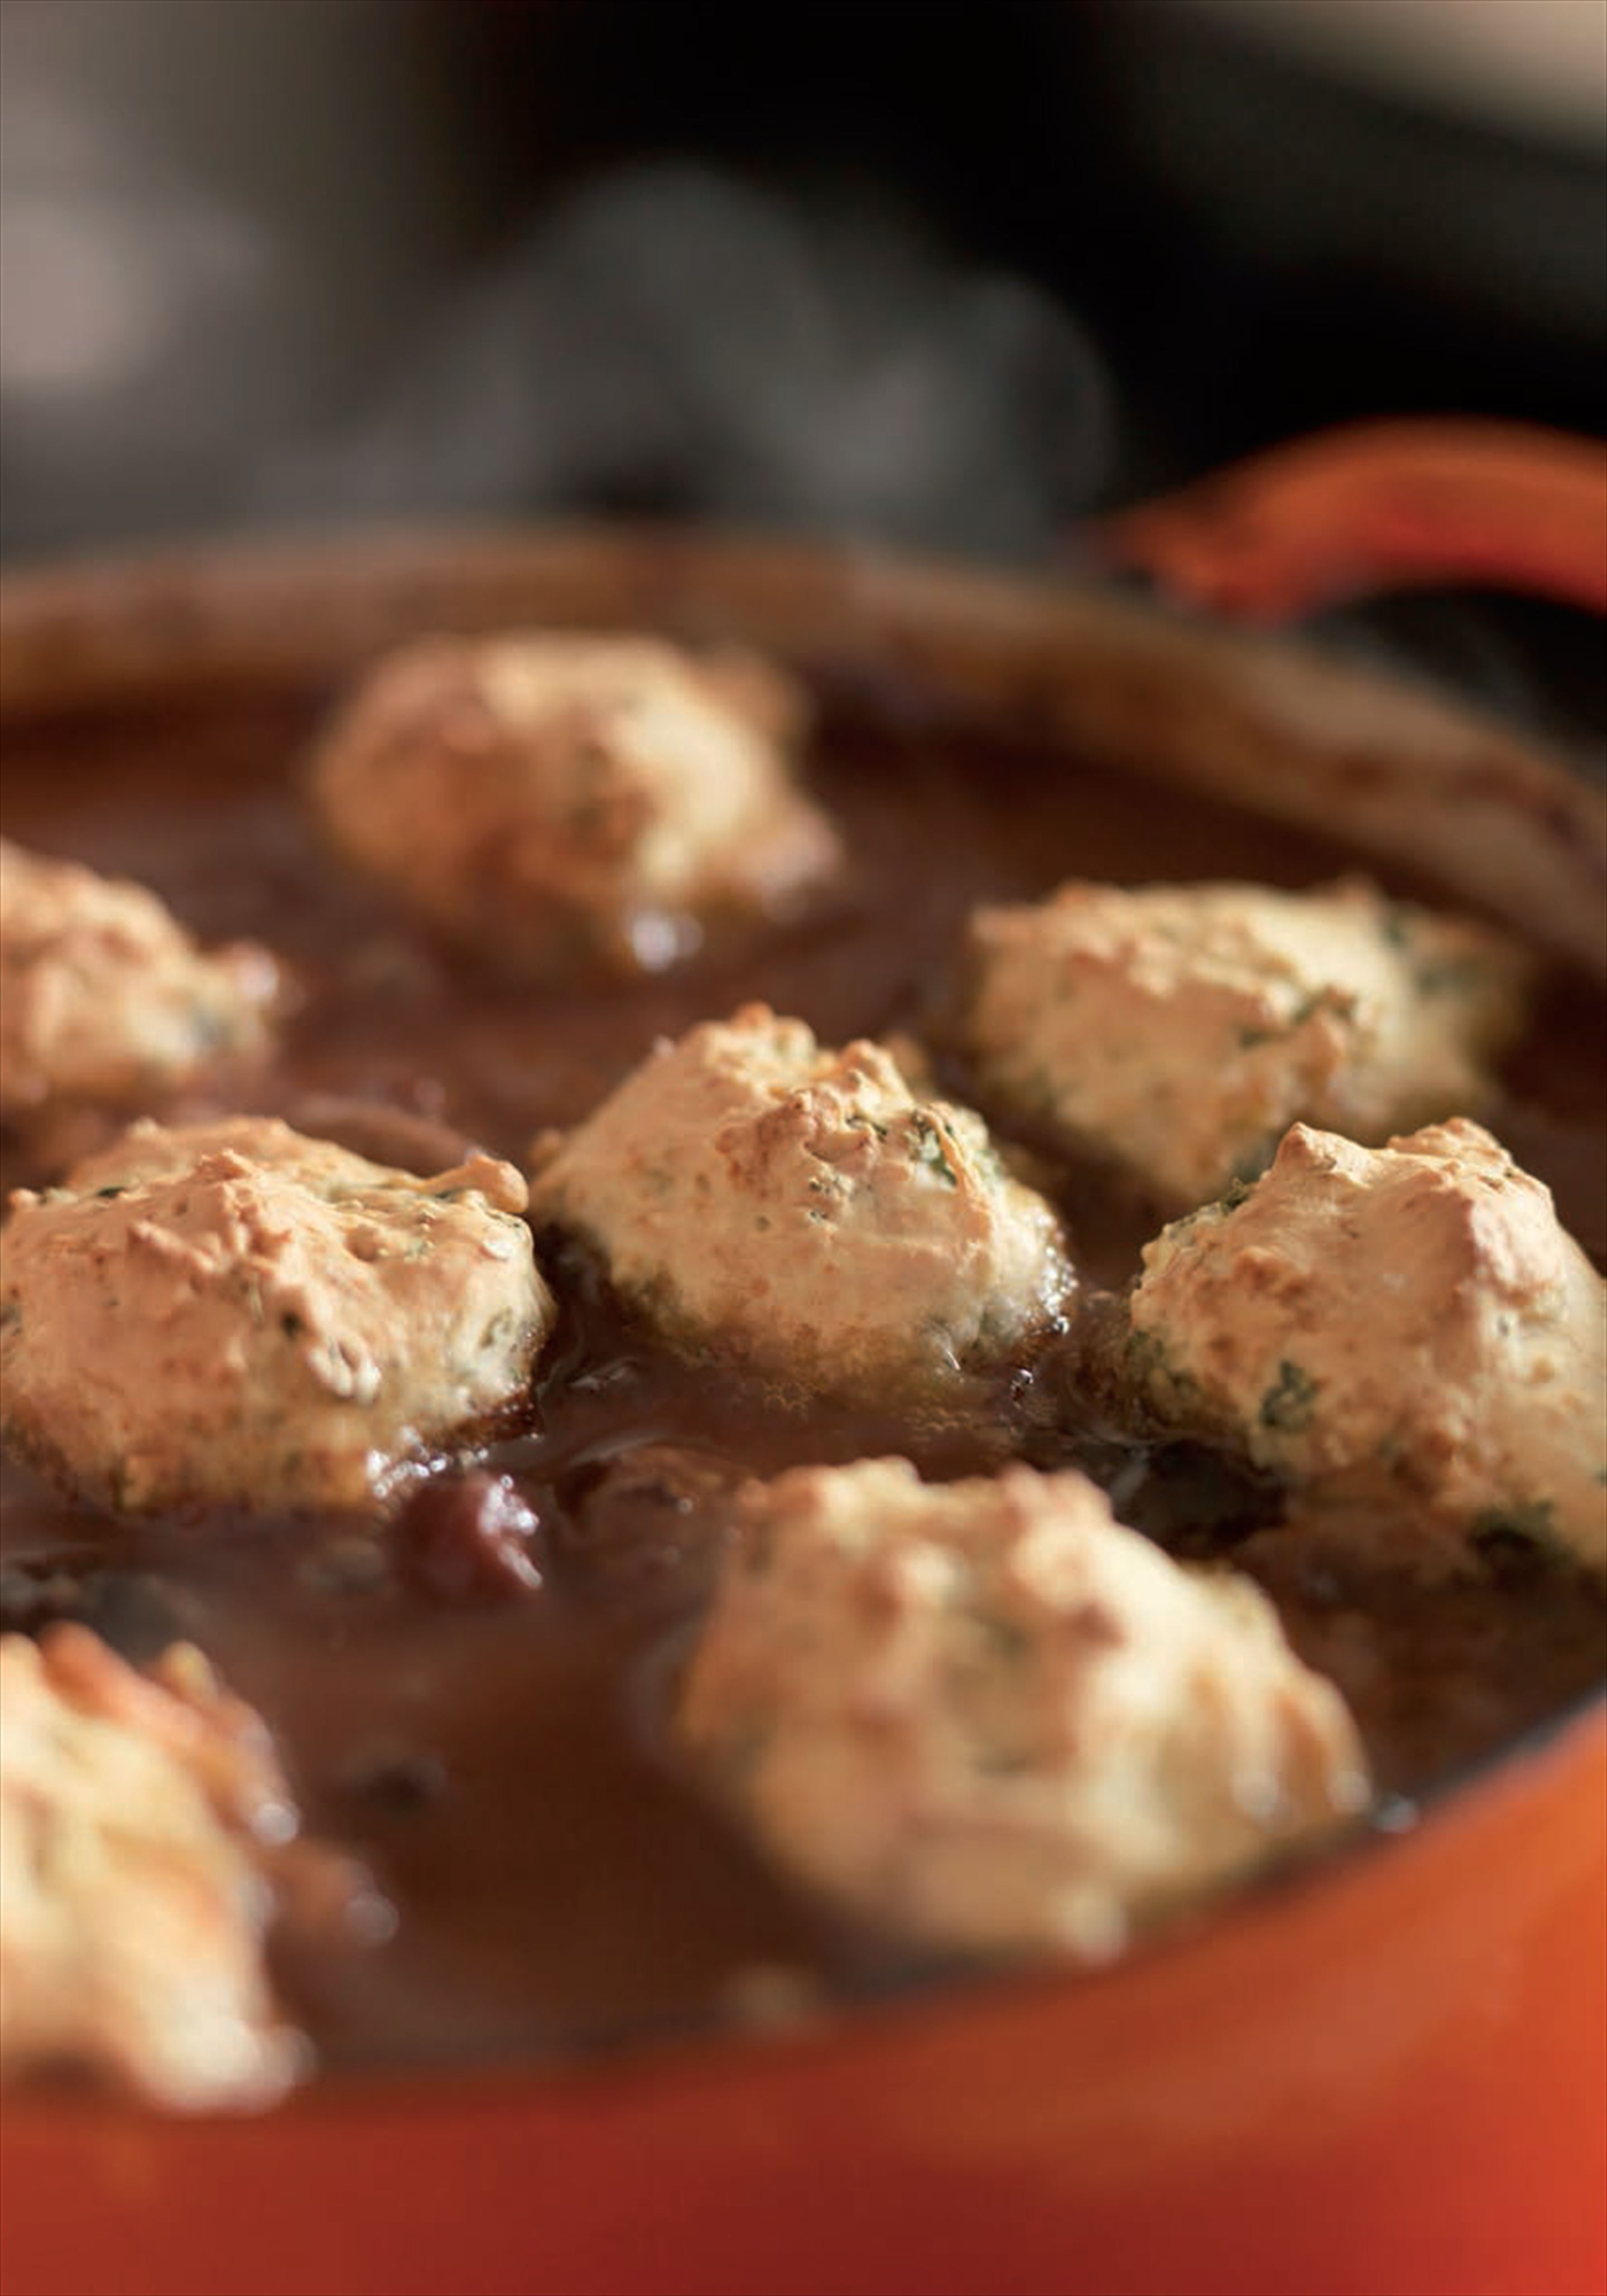 Venison casserole with parsley dumplings